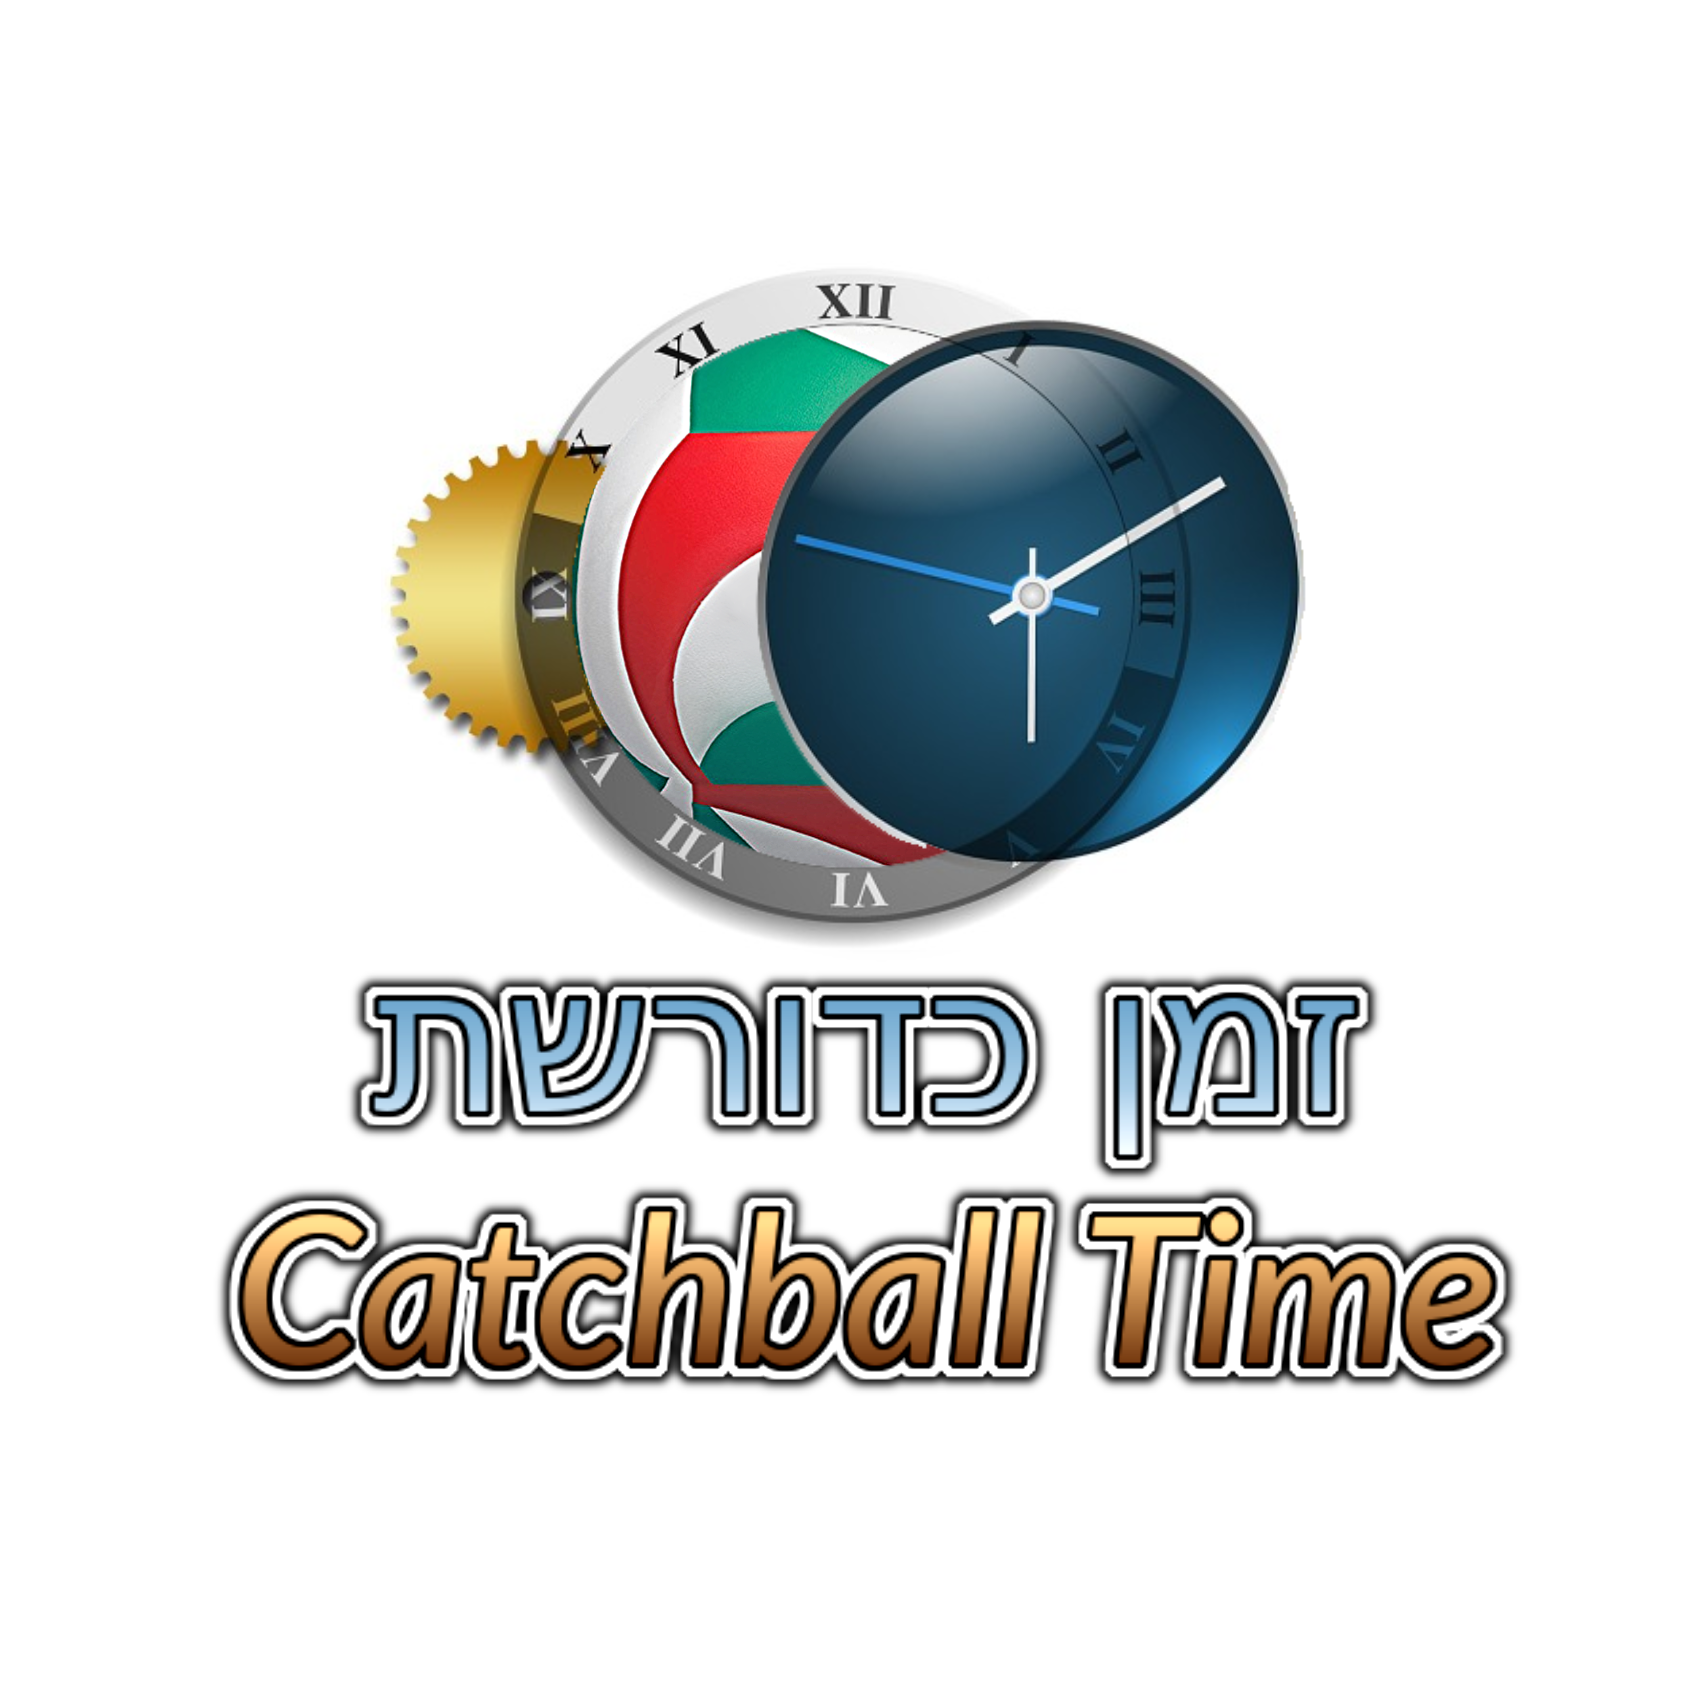 Catchball Time - ??? ??????